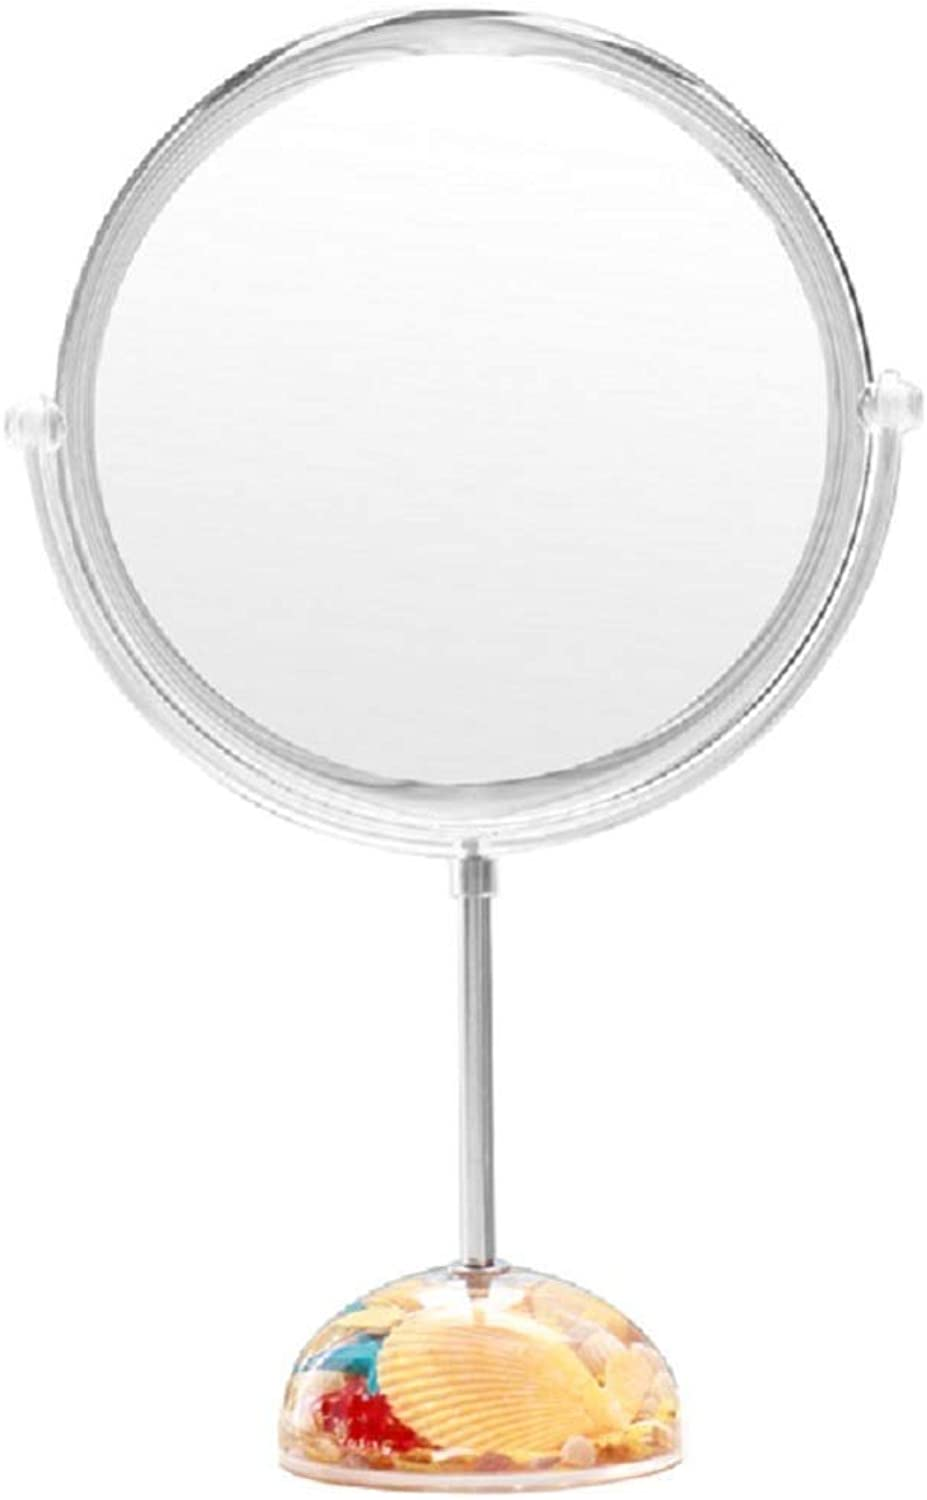 ZHILIAN& Makeup Mirror Silver Stainless Steel Simple Round Vanity Mirror HD Desktop Decorative Mirror